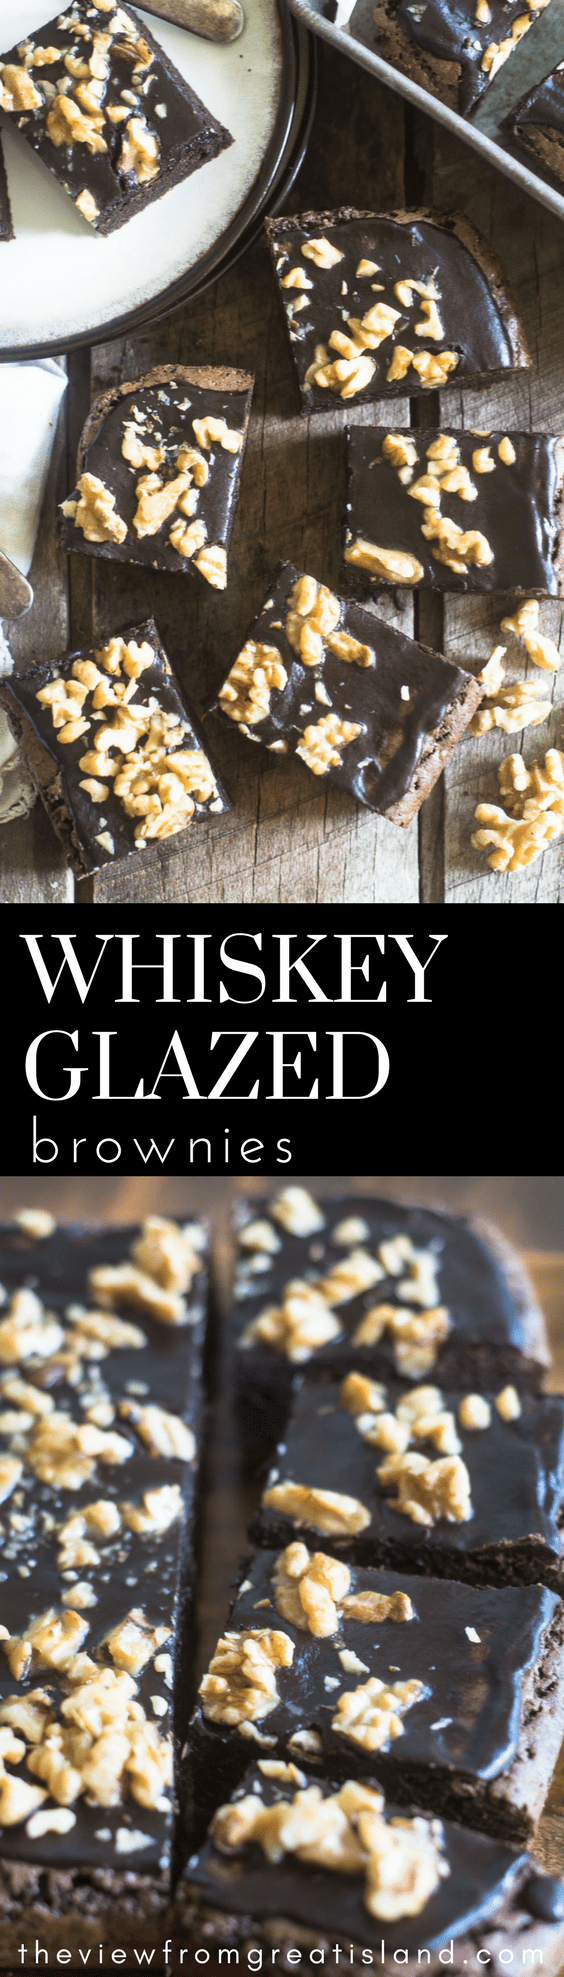 Whiskey Glazed Brownies ~ because the only way to improve on a fabulously decadent frosted brownie is to add whiskey, of course! #brownies #dessert #chocolate #bestbrownies #easybrownies #whiskey #frostedbrownies #recipe #brownierecipe